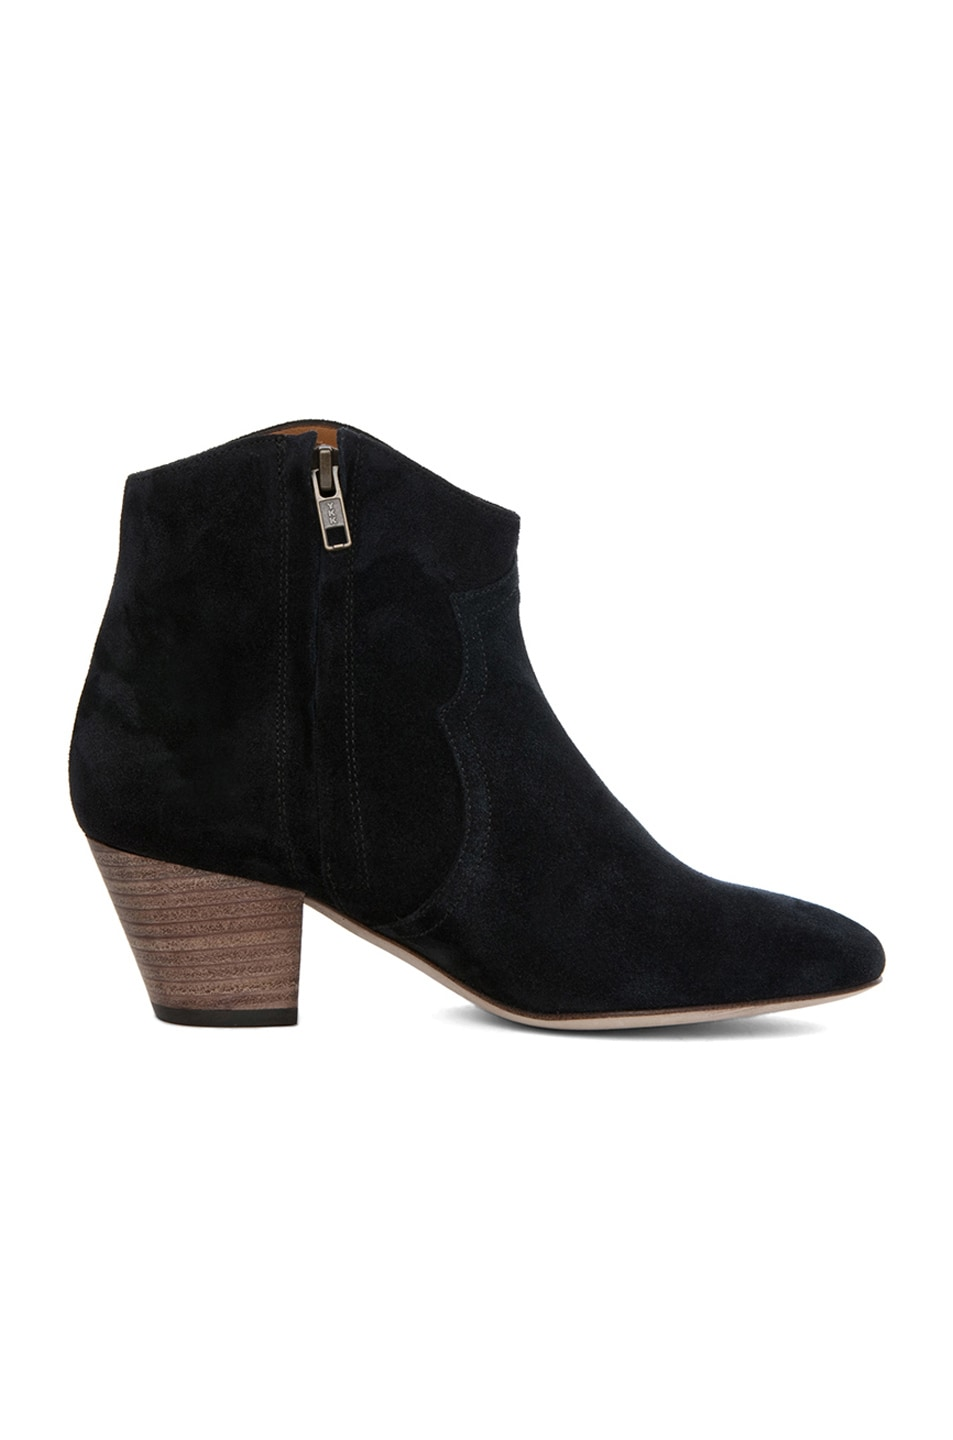 Image 5 of Isabel Marant Dicker Calfskin Velvet Leather Booties in Anthracite